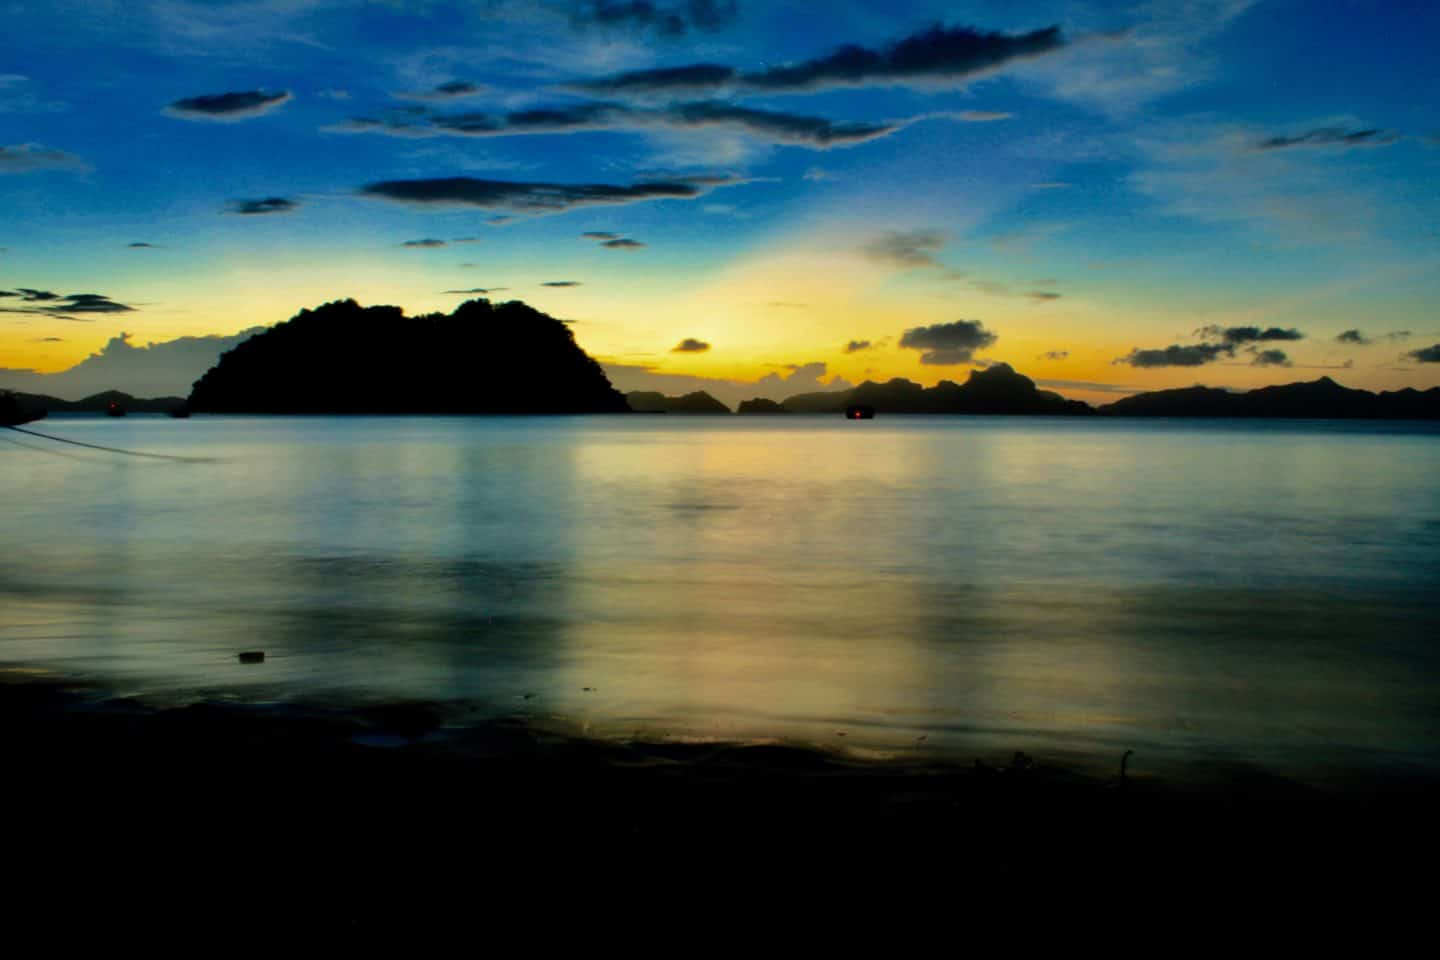 Sunset in El Nido, Palawan, Philippines